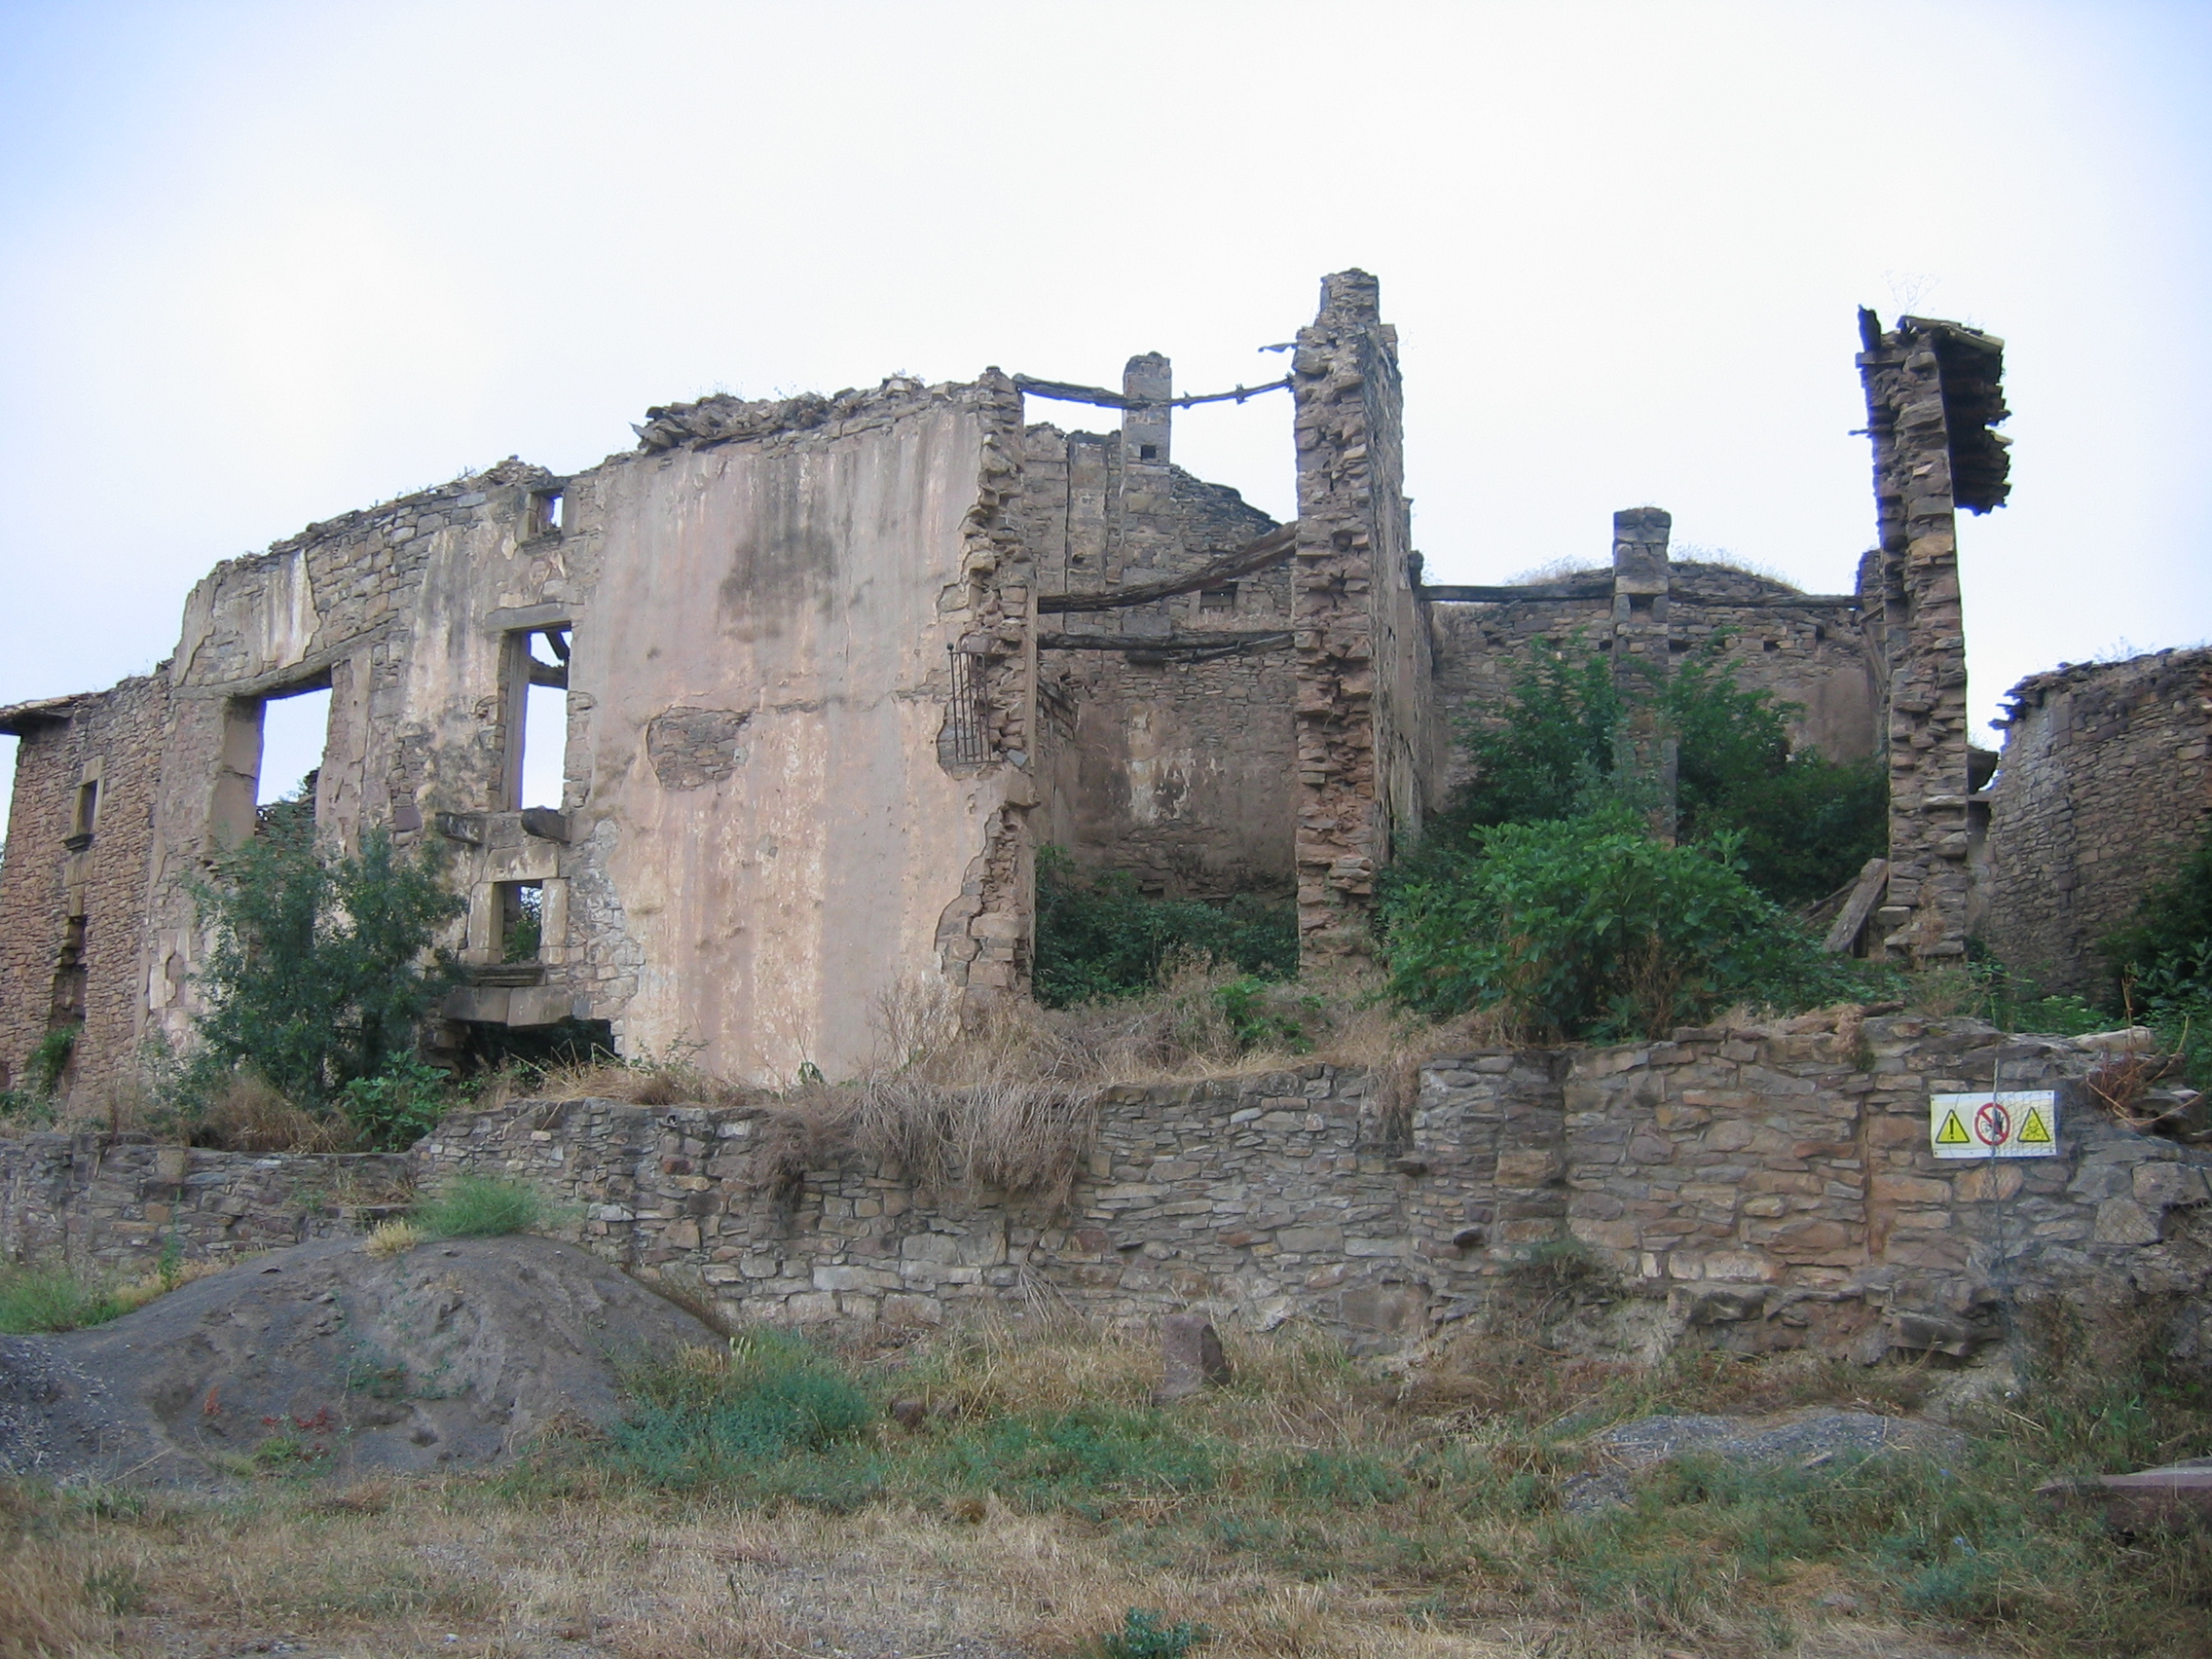 File:Ruesta - Left Building jpg - Wikimedia Commons